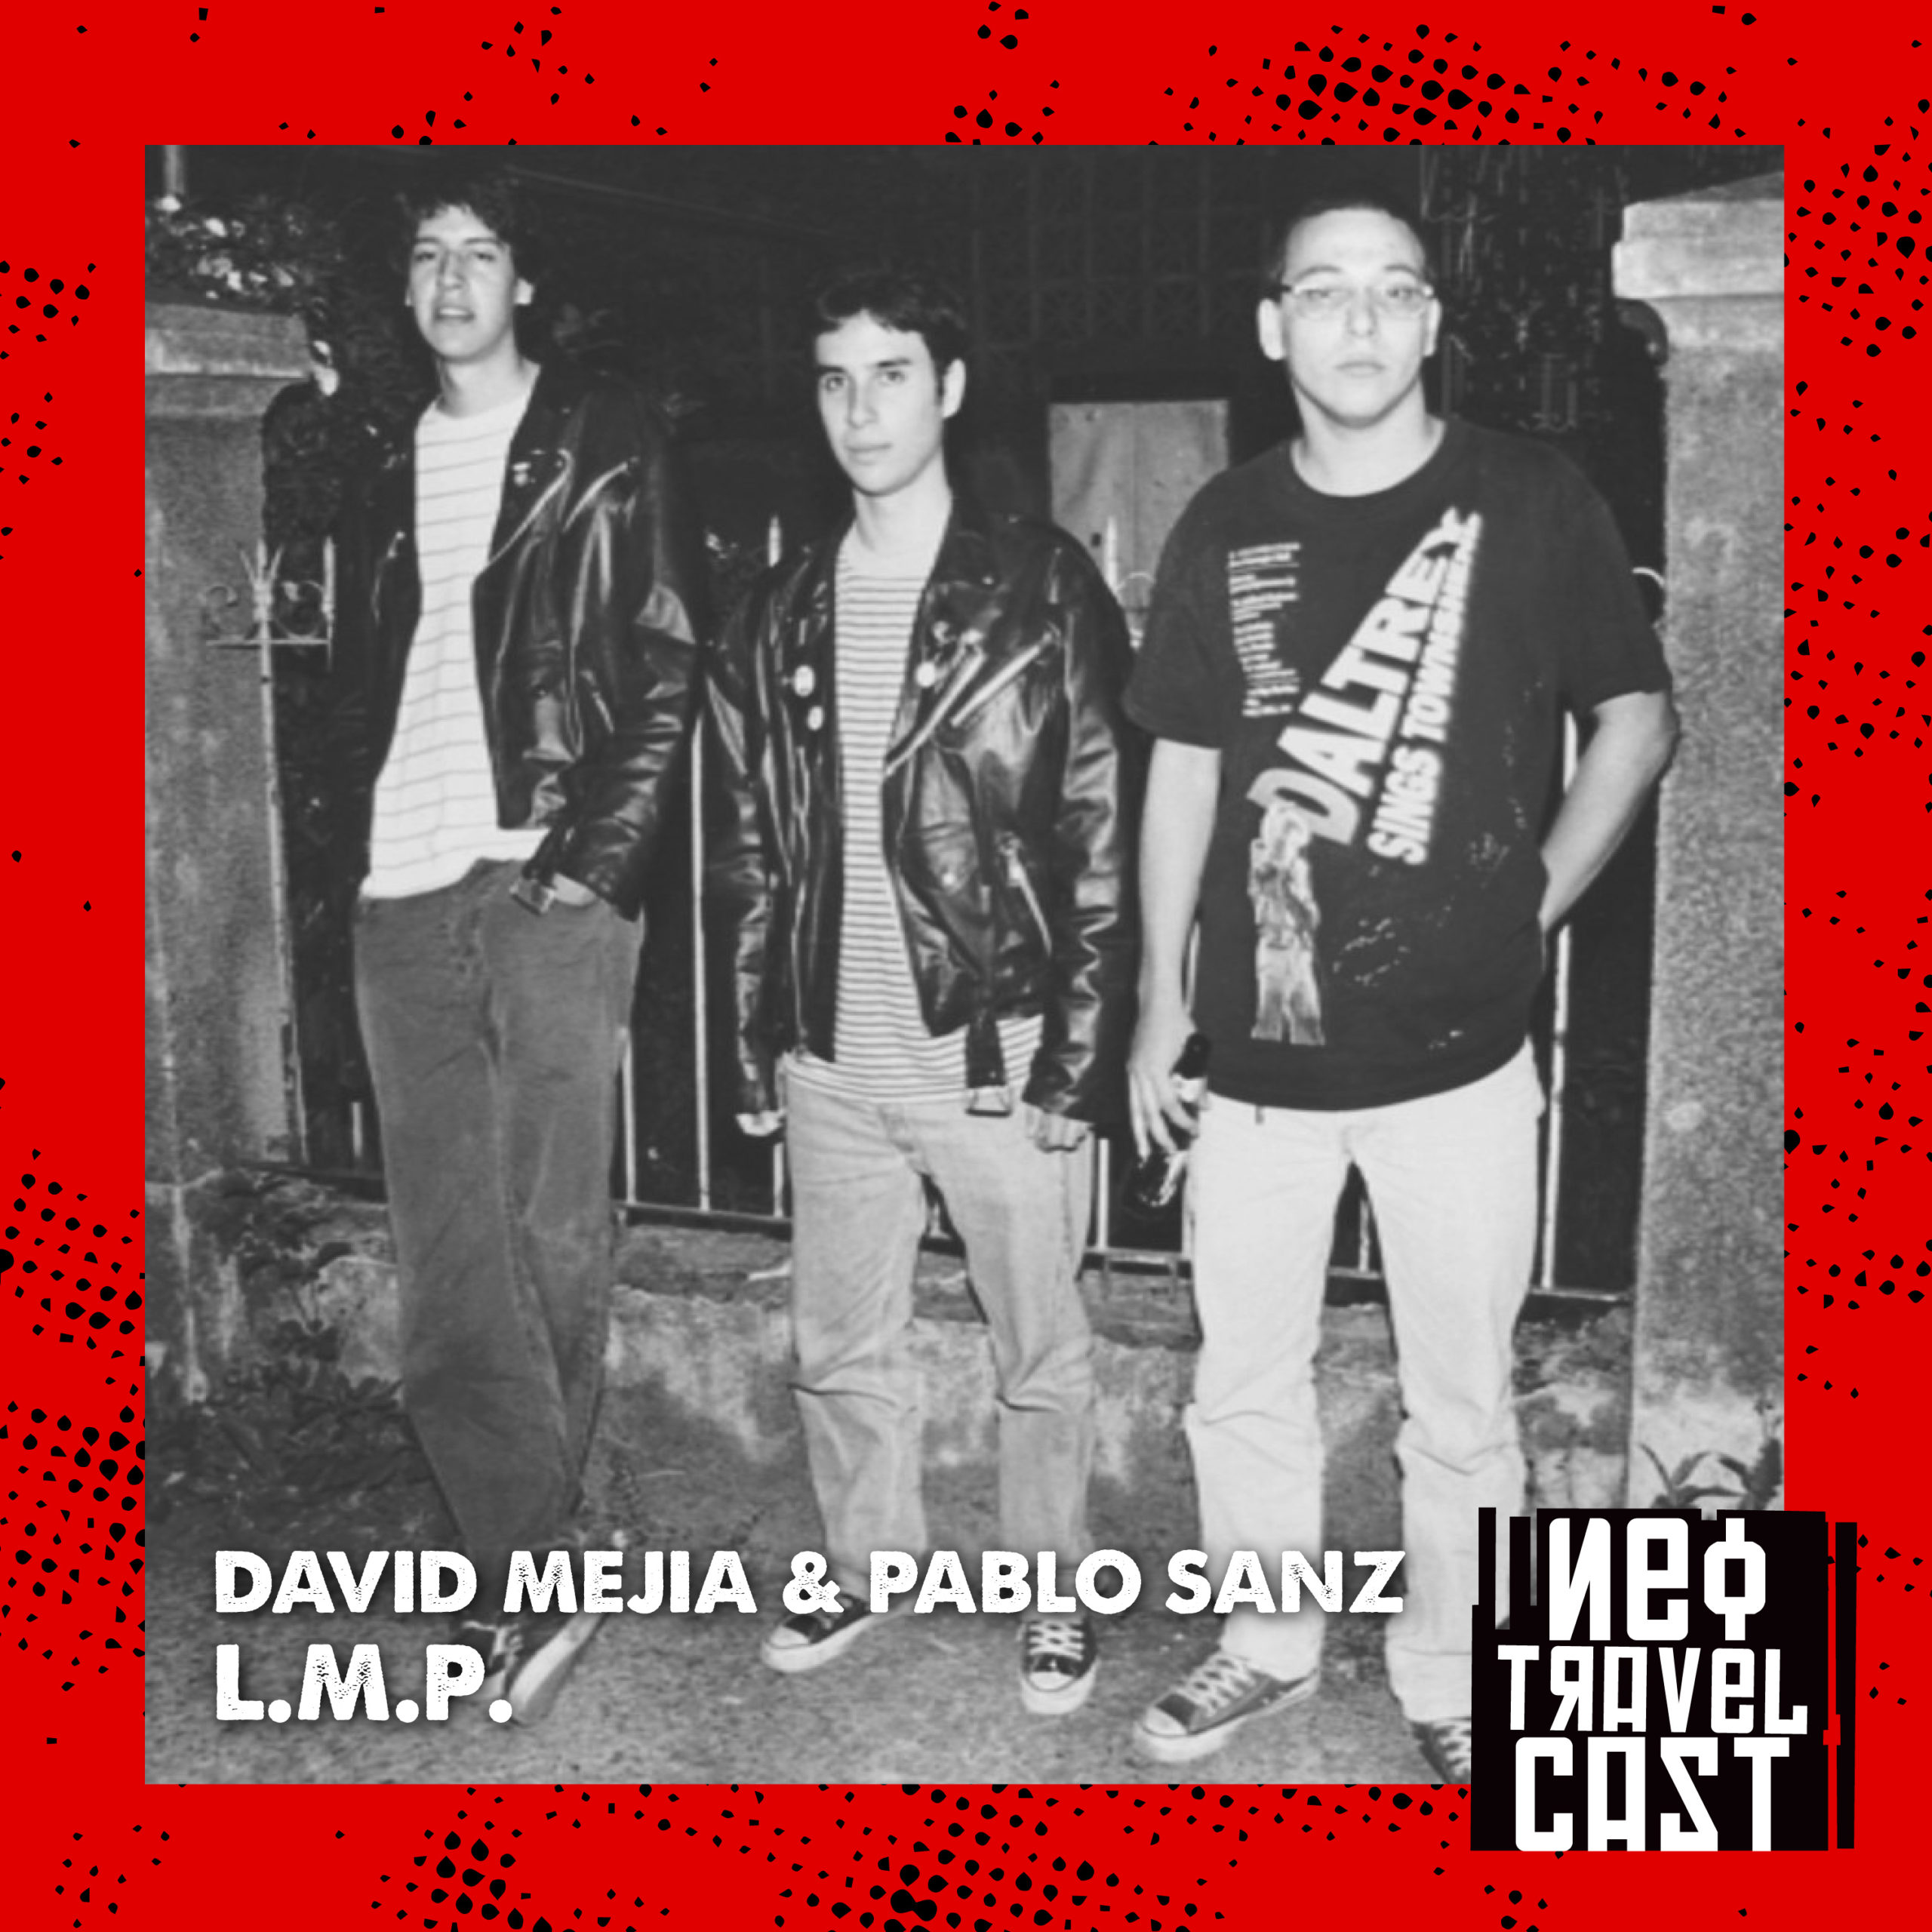 Tropical Punk Records presenta el Neo Travel Cast: La historia de LMP con David Mejía y Pablo Sanz